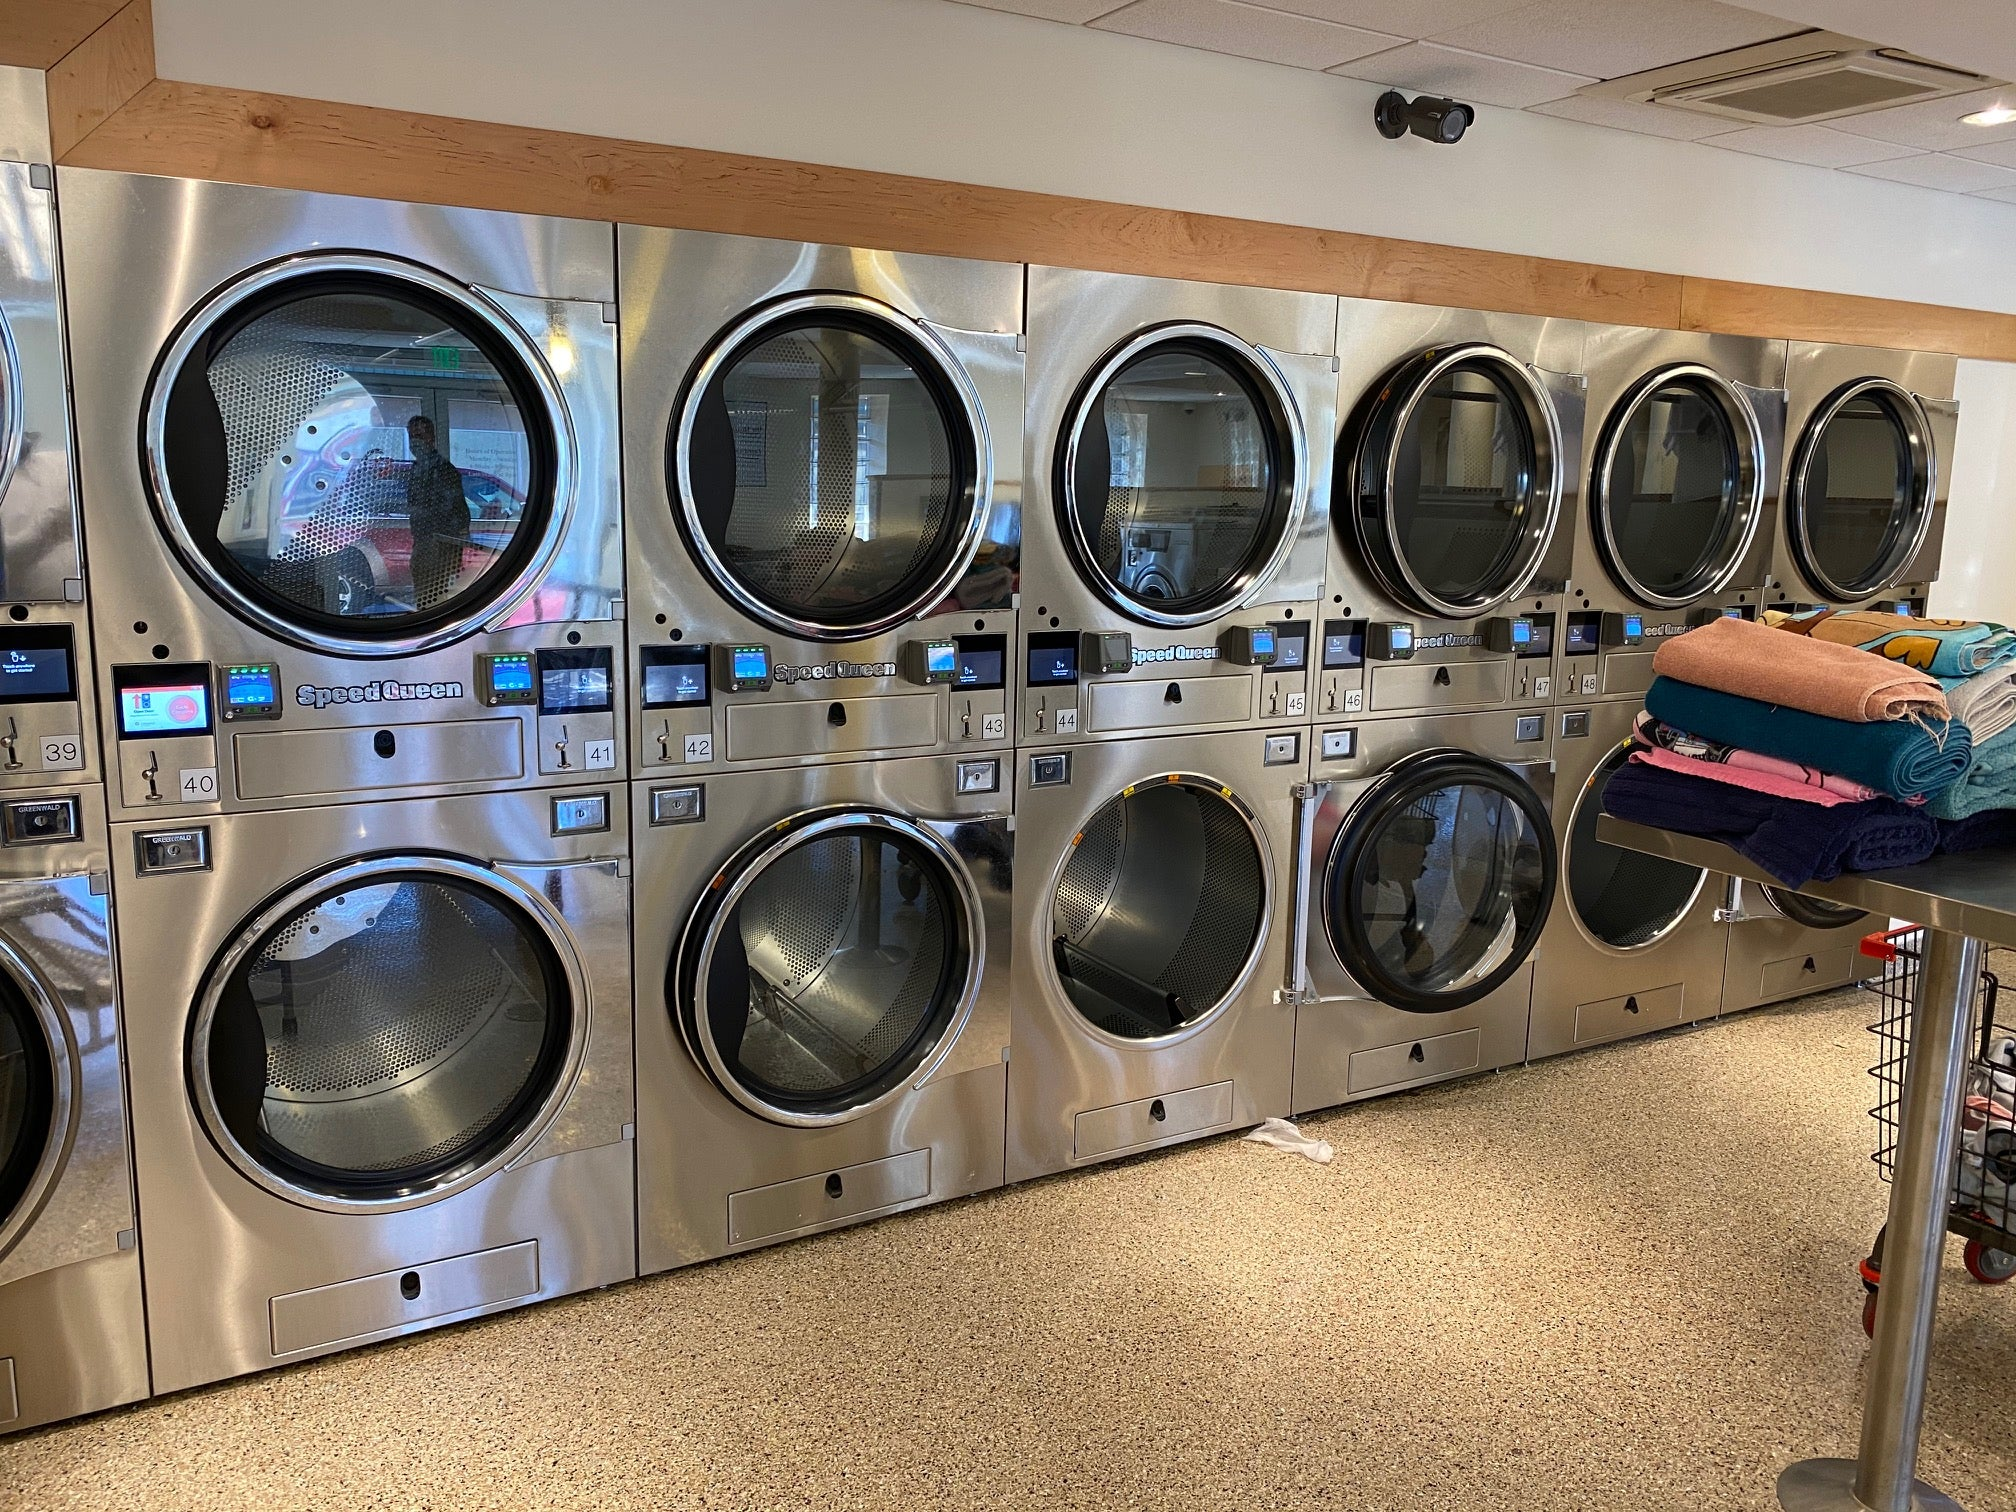 South Memphis Alliance Laundromat & Resource Recently Upgrade by Star Distributing